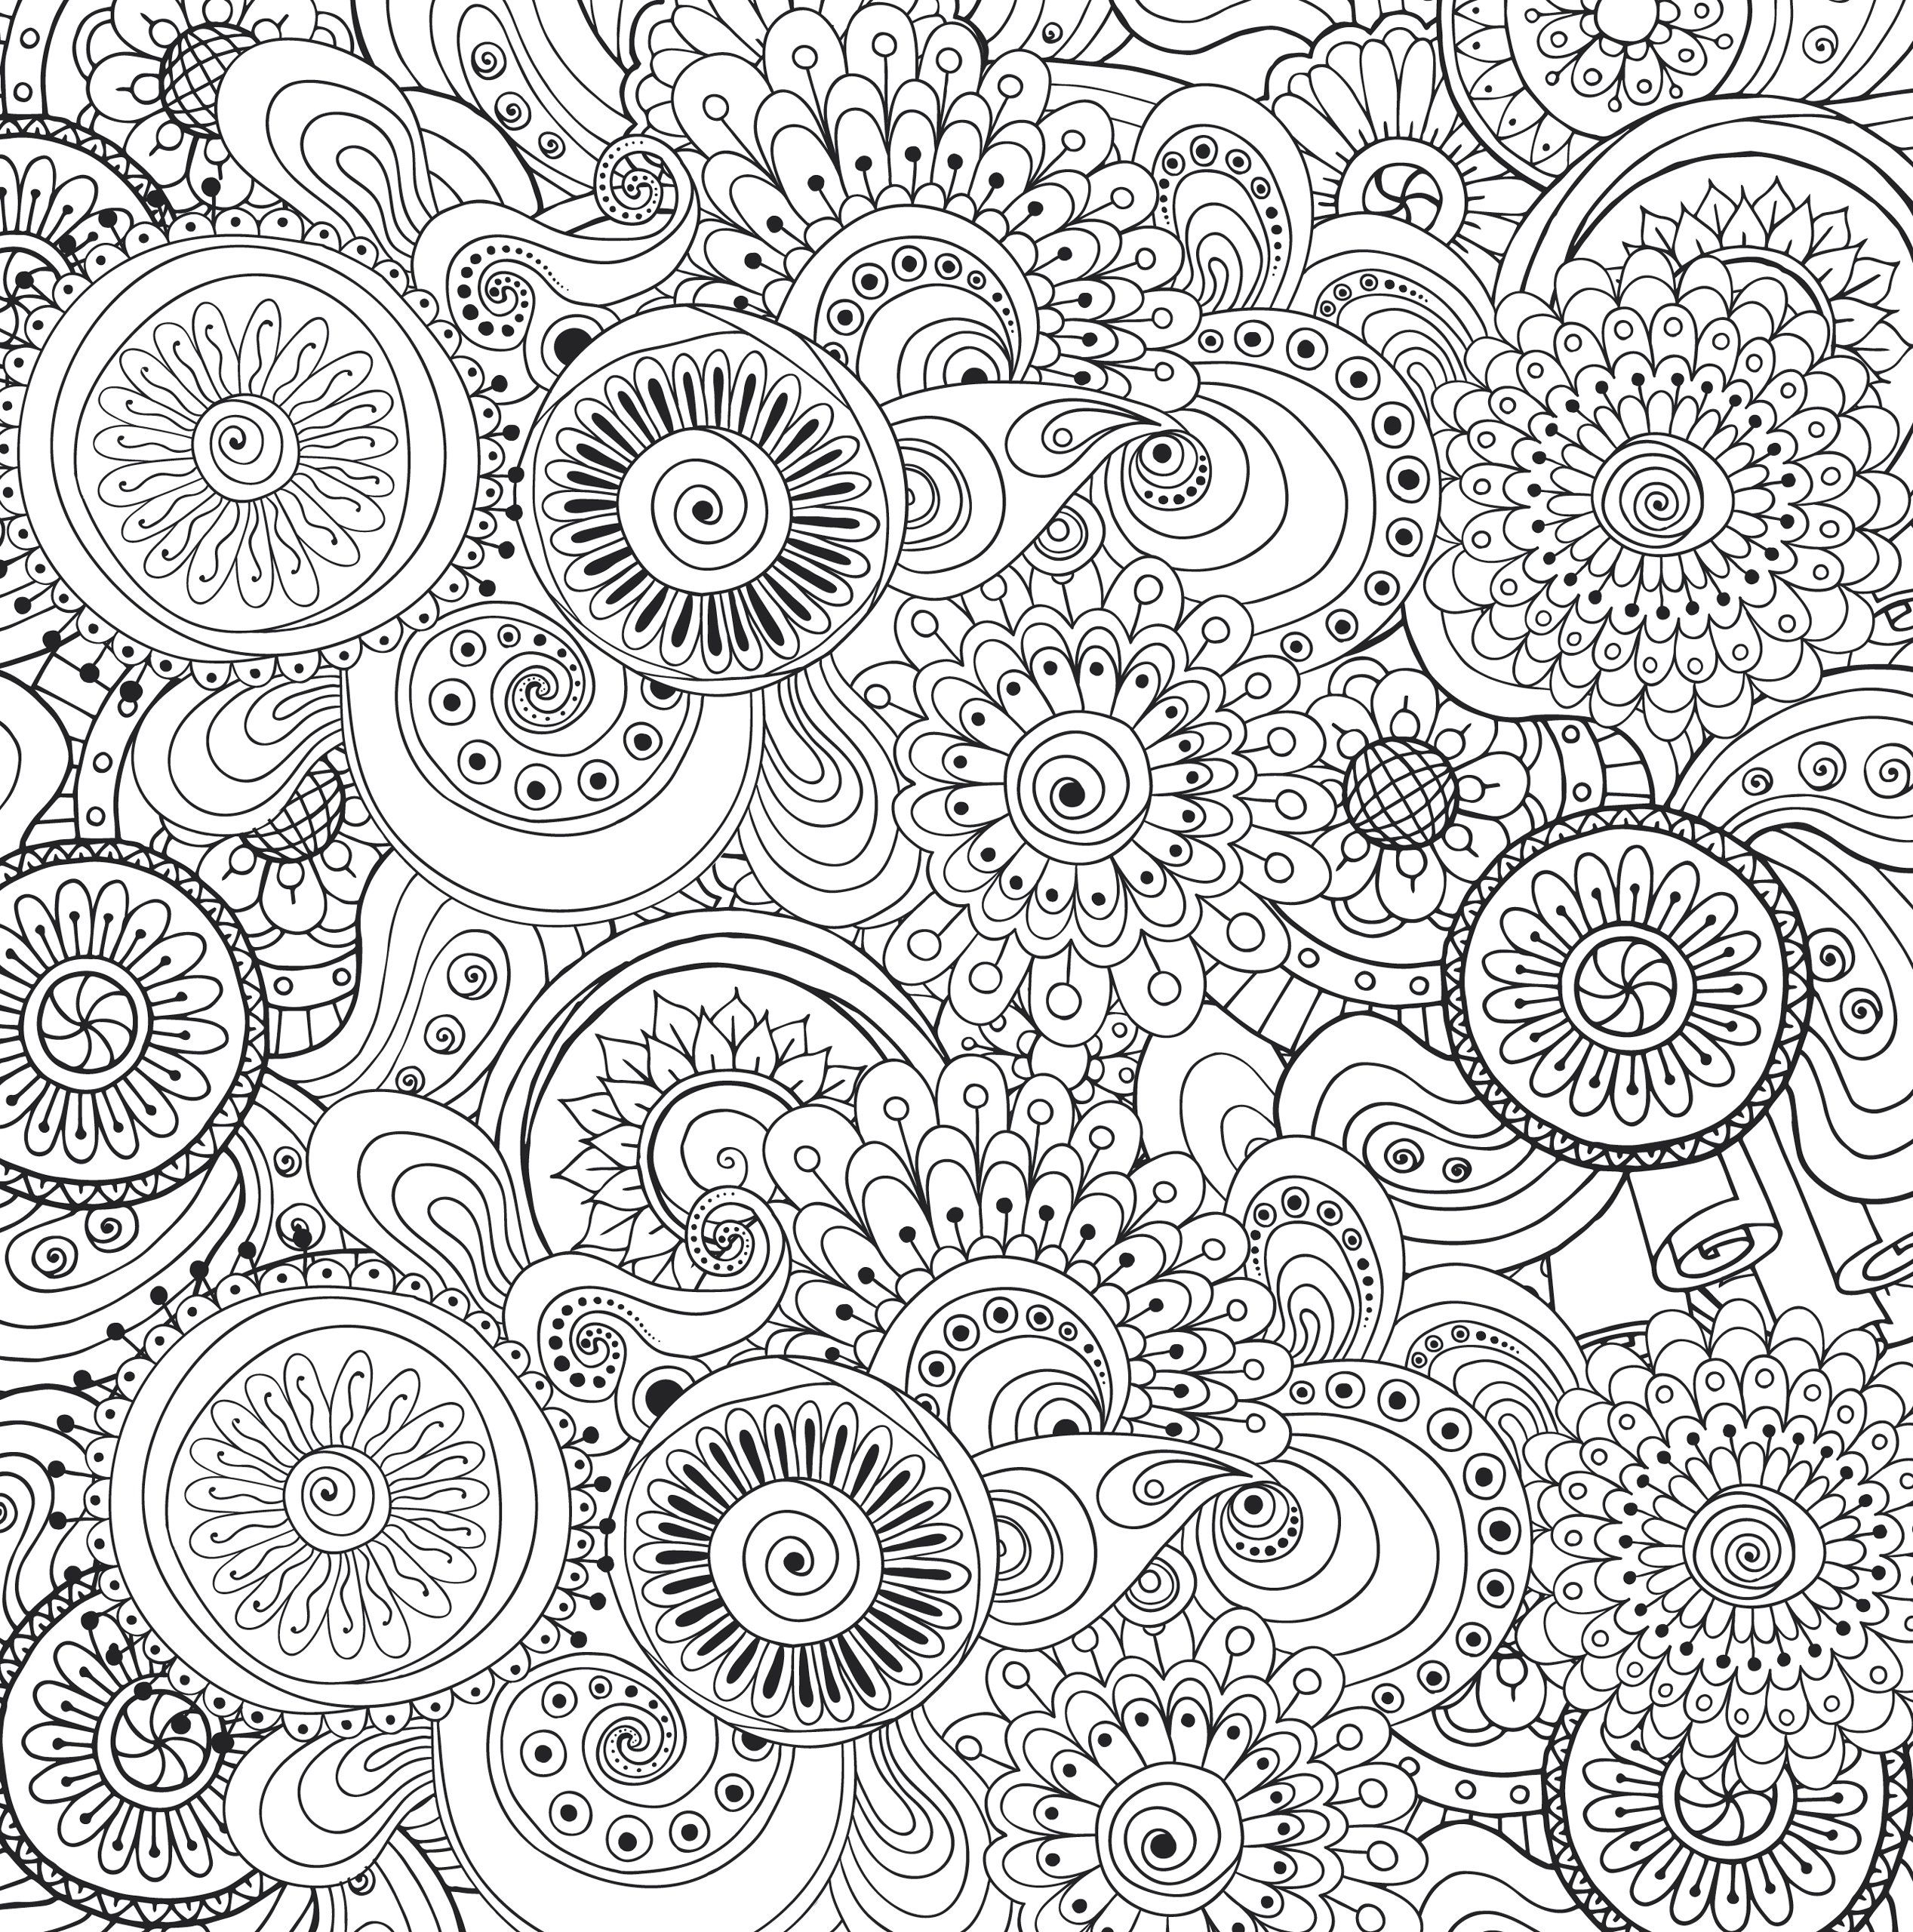 Peaceful Paisleys Adult Coloring Book 31 Stress Relieving Designs